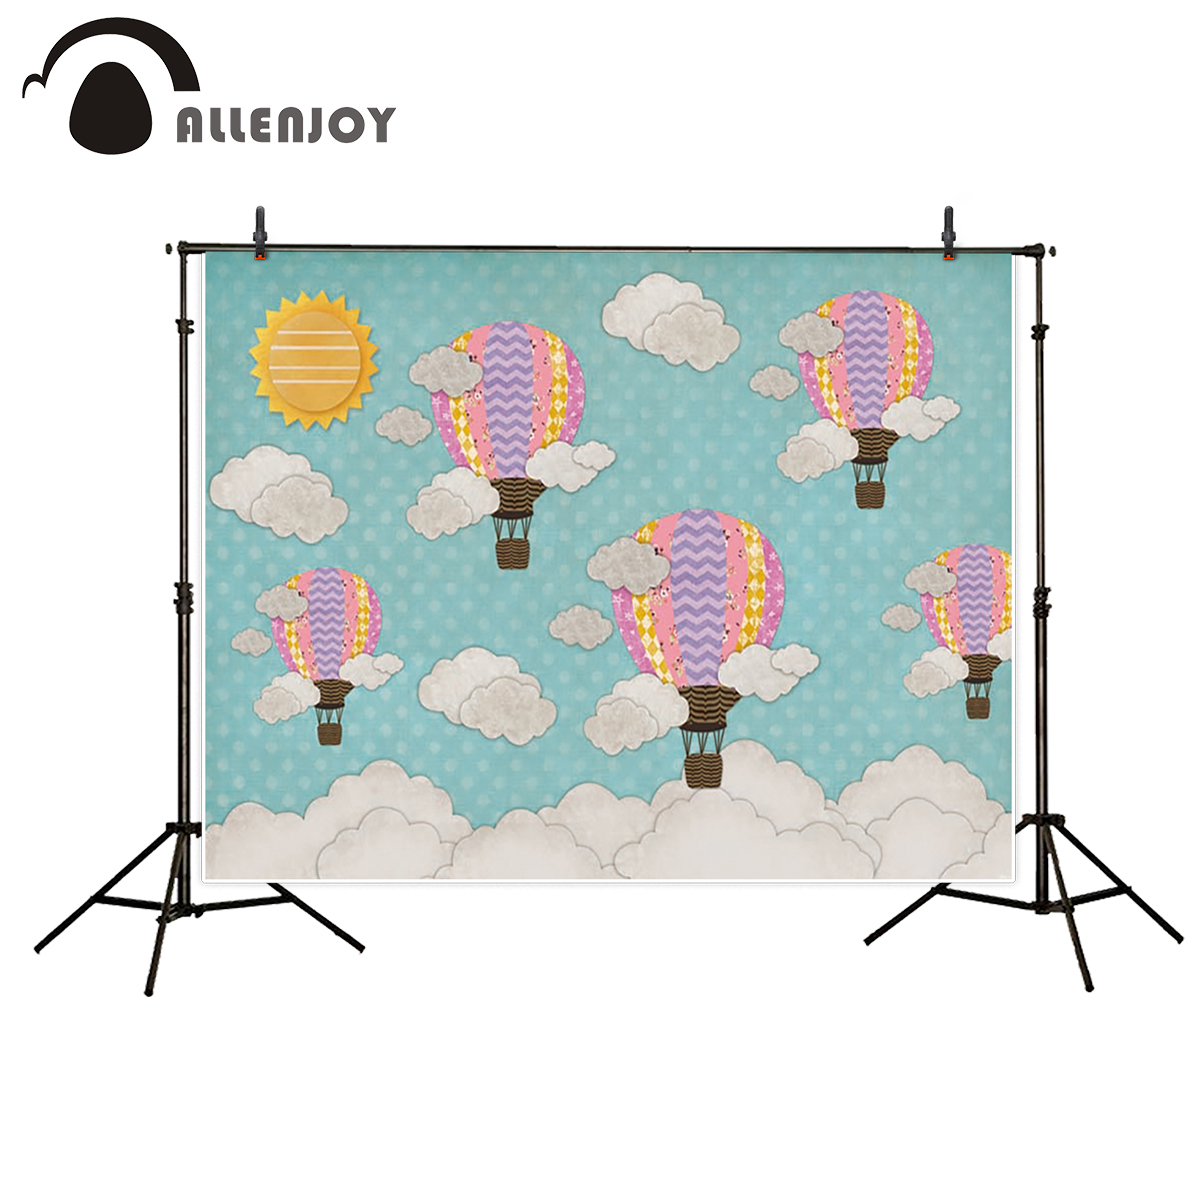 Allenjoy photography backdrop sun baby colorful hot air balloon cloud background newborn photobooth photo studio photo background blue sky white clound photography backdrops newborn hot air balloon fly studio photo backdrop